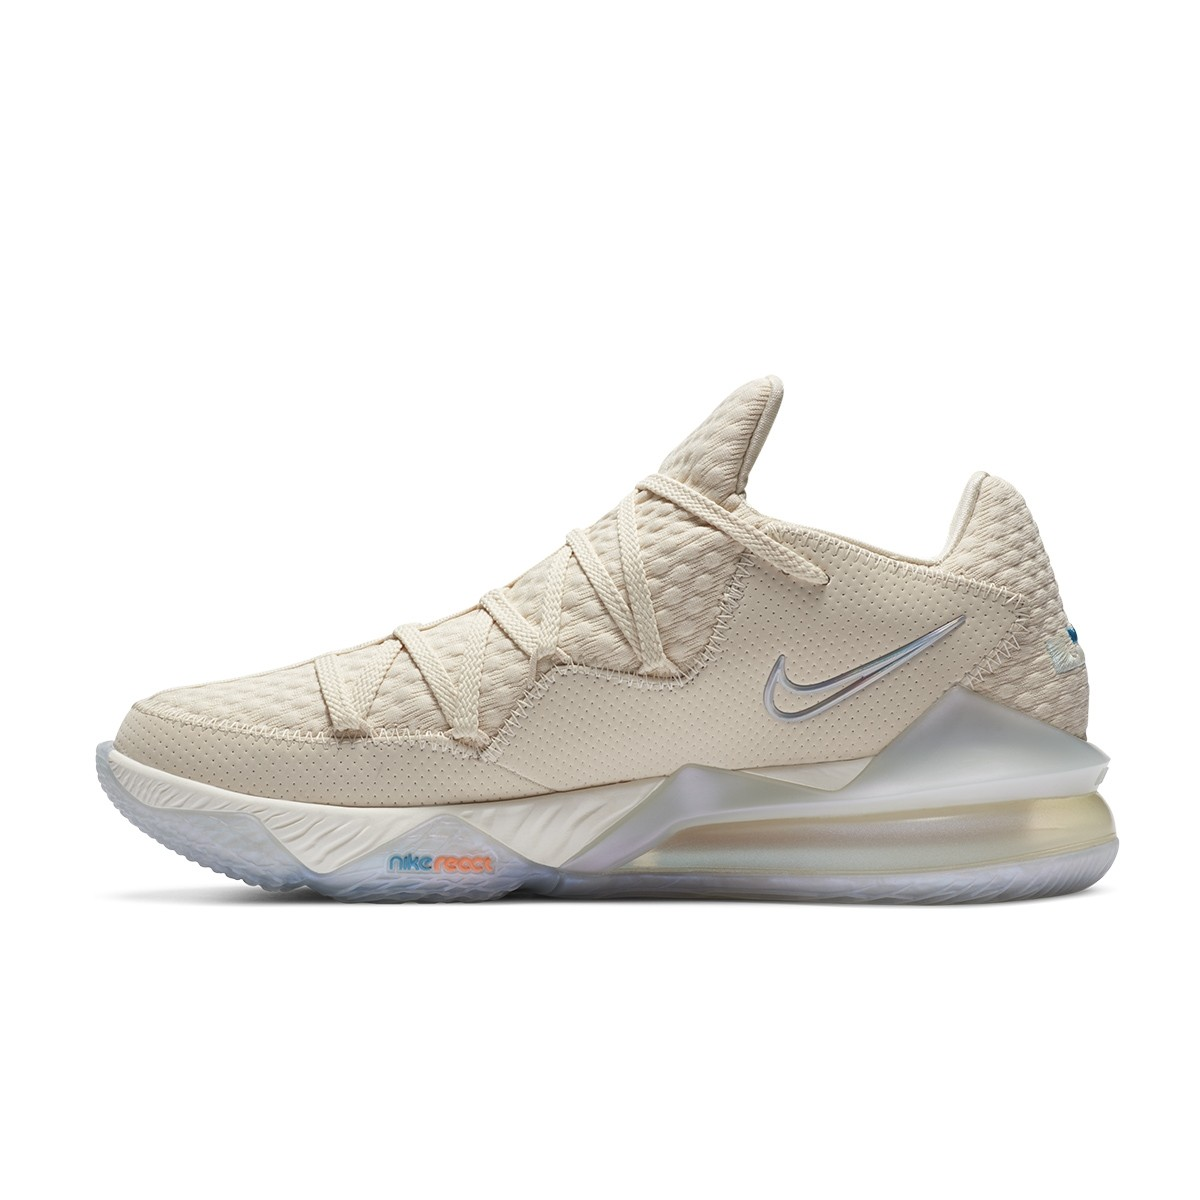 Nike Lebron XVII Low 'Light Cream'-CD5007-200